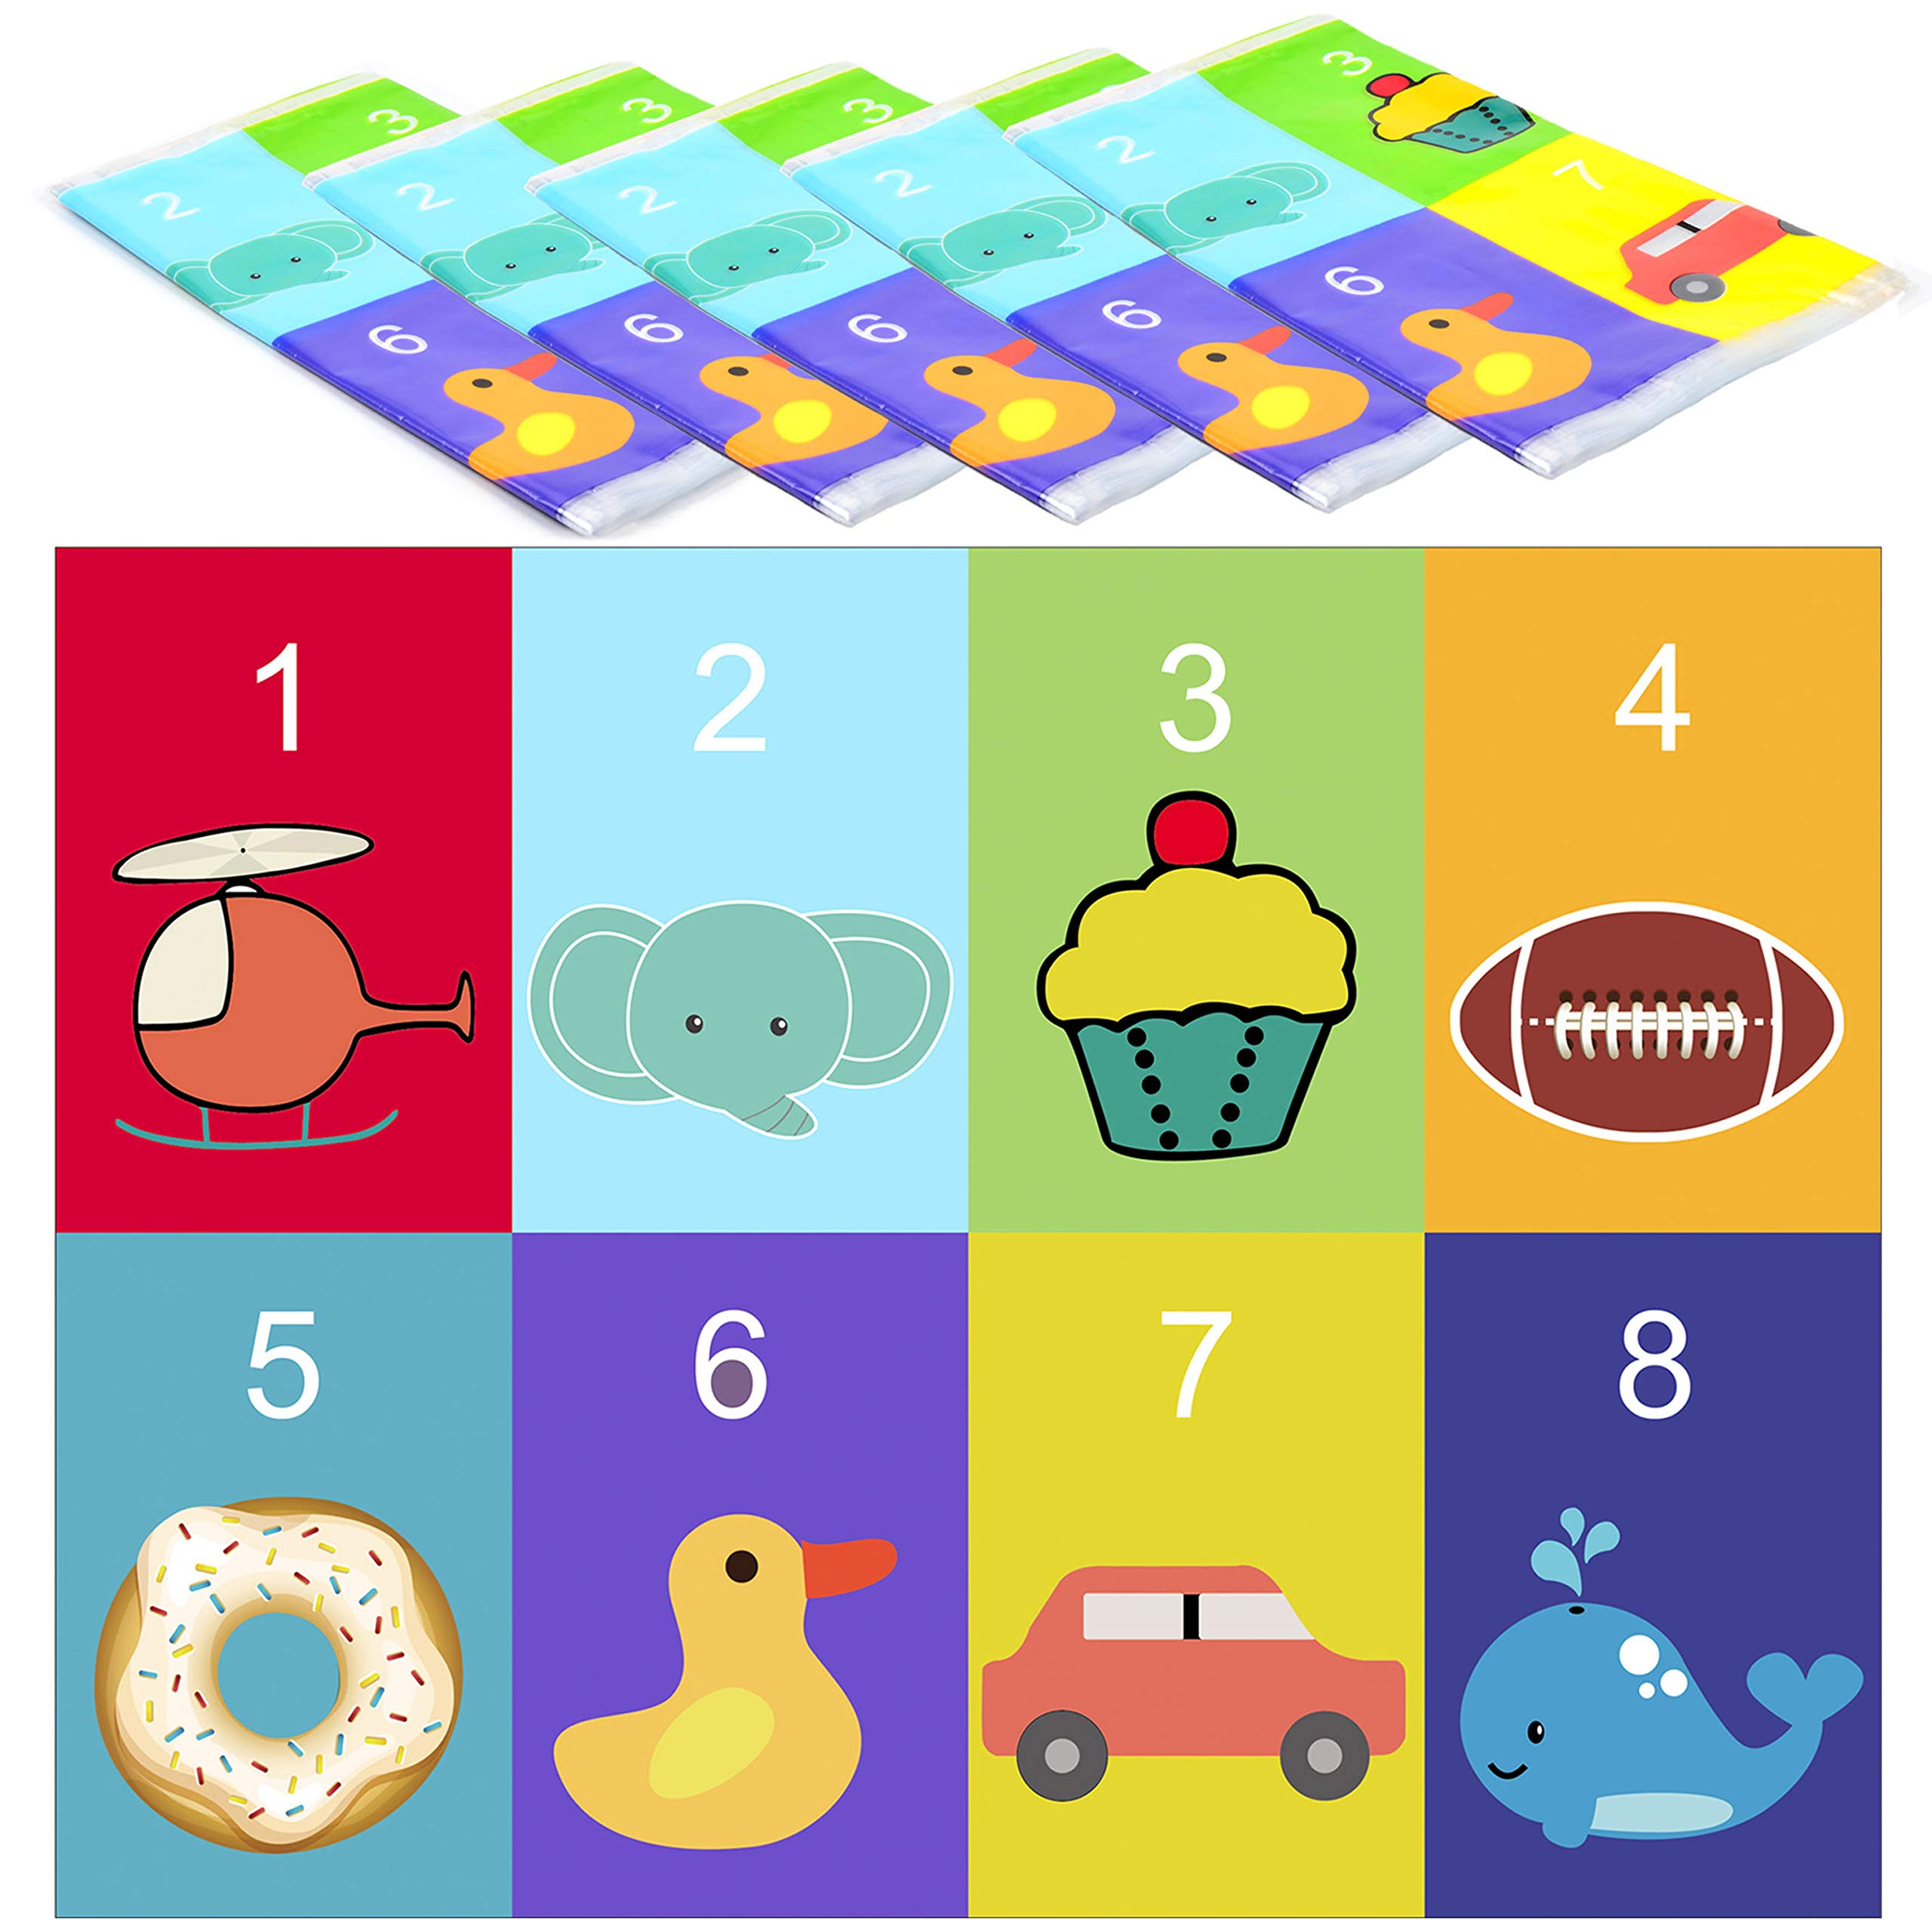 Youngever 80 Disposable Placemats Table Topper, Extra Sticky (4 Sides) Adhesive Peel and Stick Strip Disposable Mats for Kids Toddlers Baby Children, 18 Inch x 12 Inch Kids Safe, FDA Approved (Animal) by Youngever